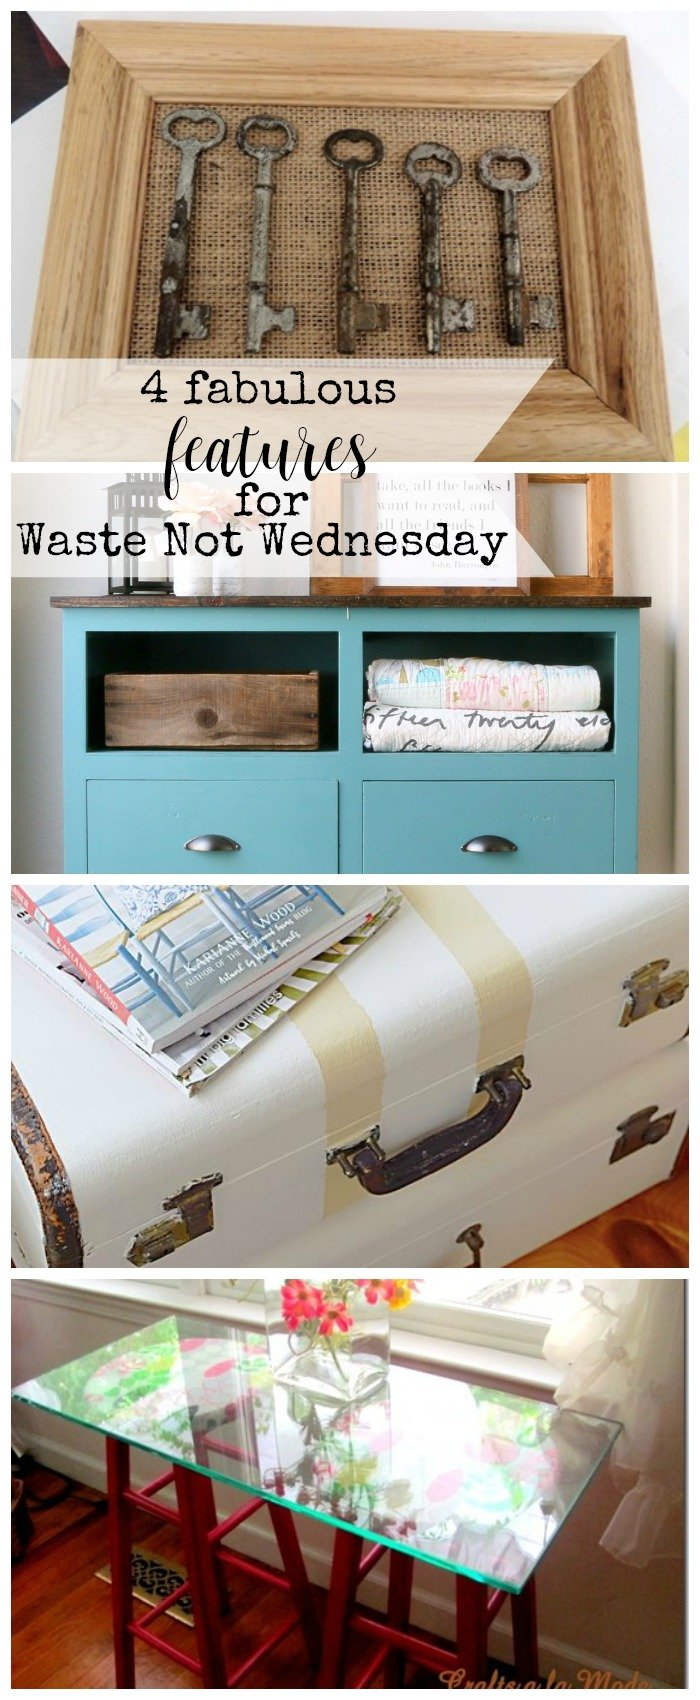 Features from our fun Waste Not Wednesday-92 DIY, Craft, Home Decor and Recipe party this week! Be sure to join us and share your DIY, Craft, Home Decor and favourite recipes! | www.raggedy-bits.com | www.mythriftyhouse.com | www.salvagesisterandmister.com | #WasteNotWednesday #DIY #HomeDecor #Craft #Recipes